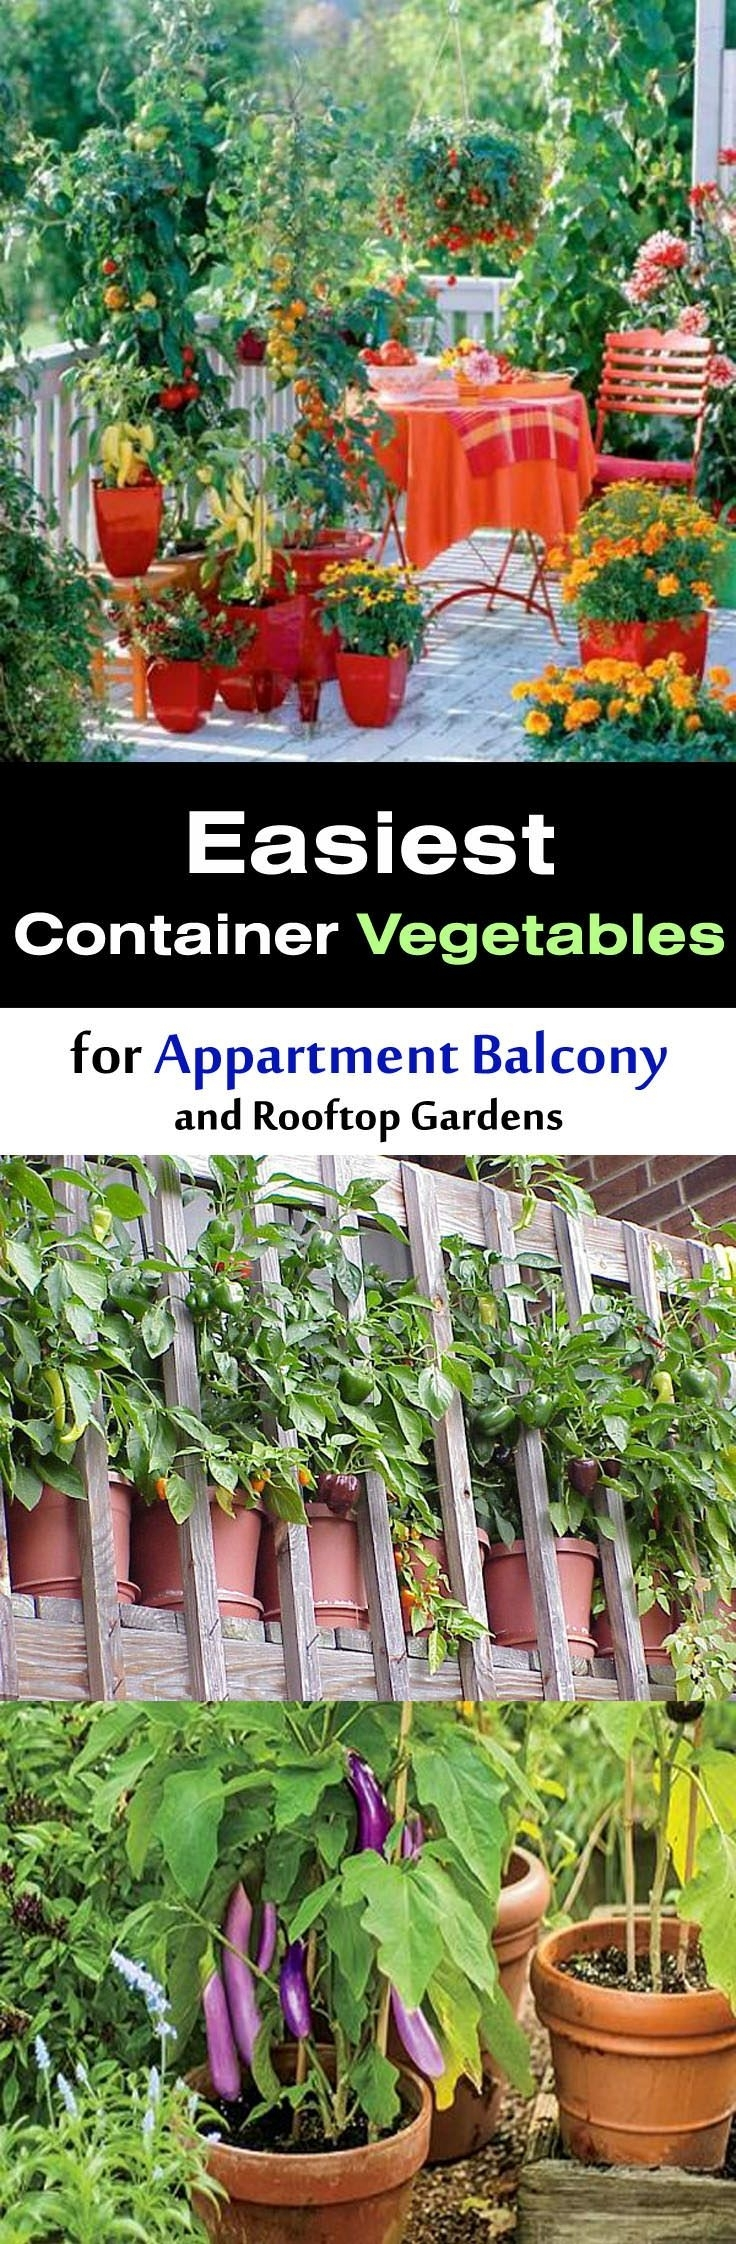 17 best ideas about apartment vegetable garden on pinterest within the best ideas for sunset garden